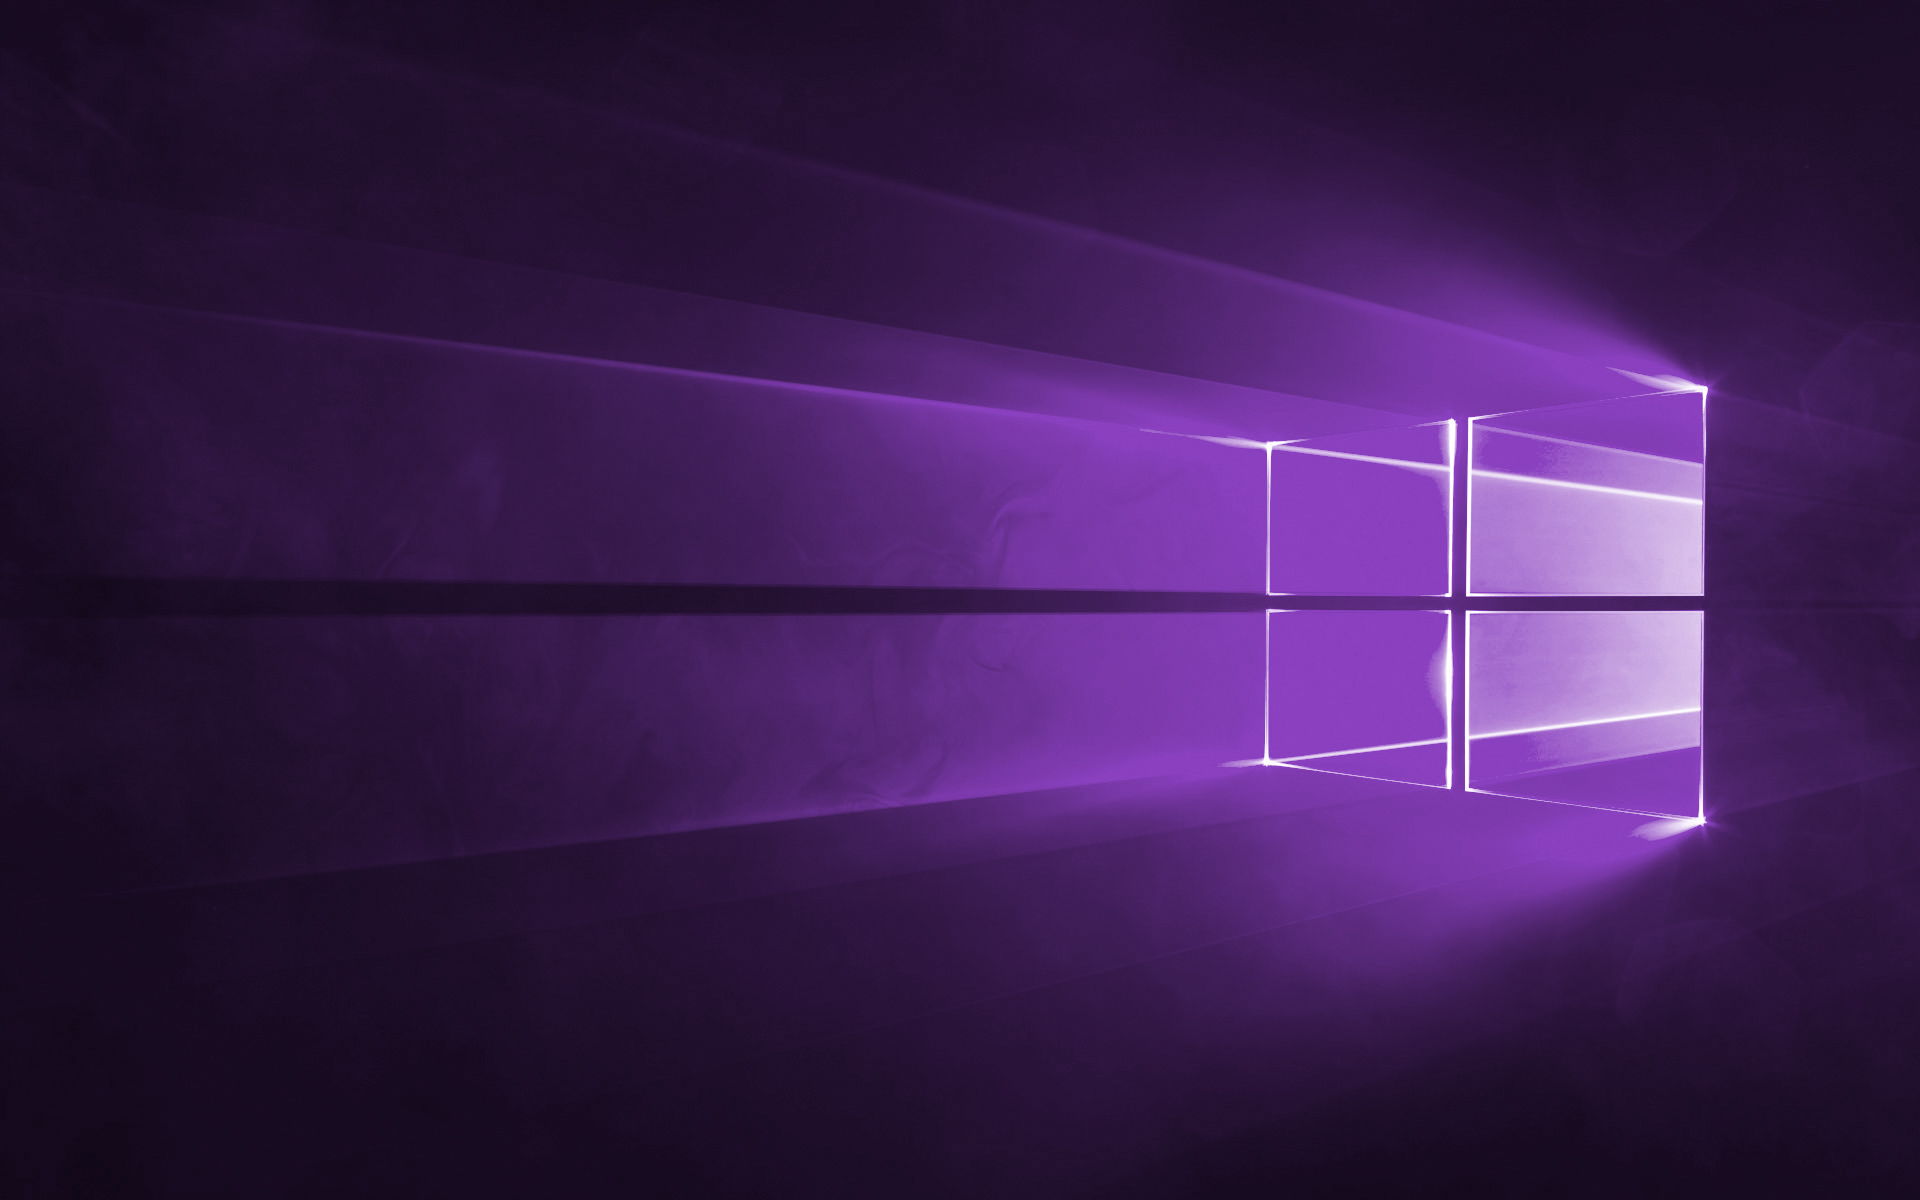 Come Impostare I Wallpaper Alla Massima Qualità In Windows 10